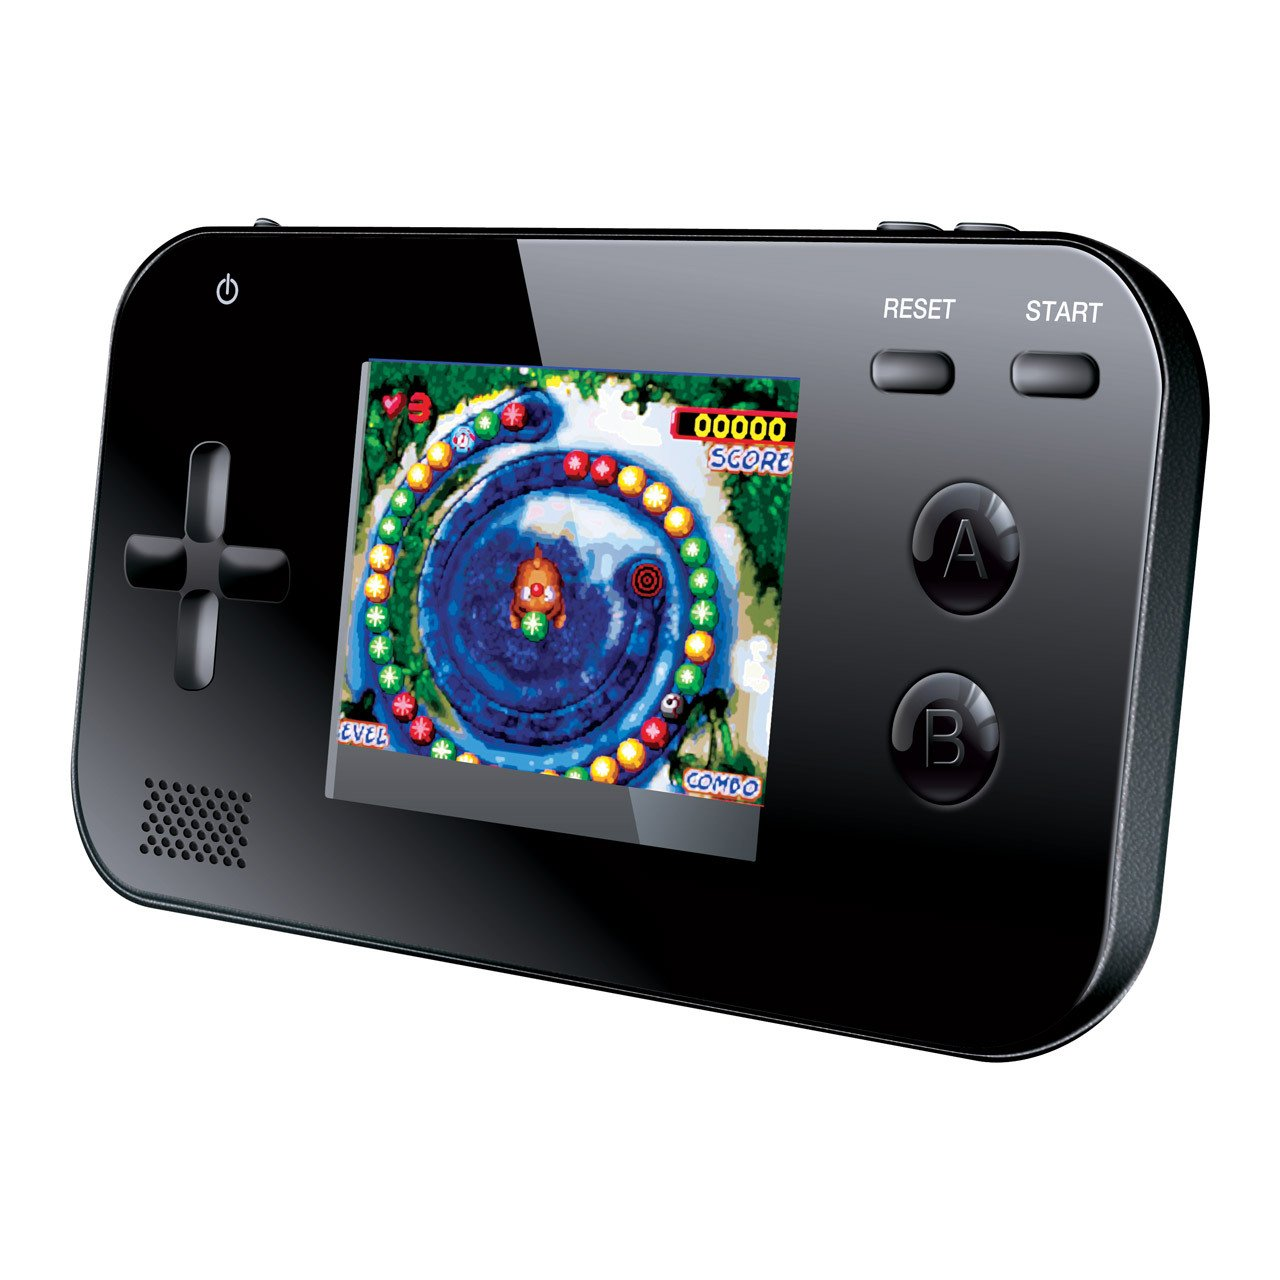 dreamGEAR Handheld Portable Arcade Video Gaming System - 220 Retro Games Entertainment by dreamGEAR